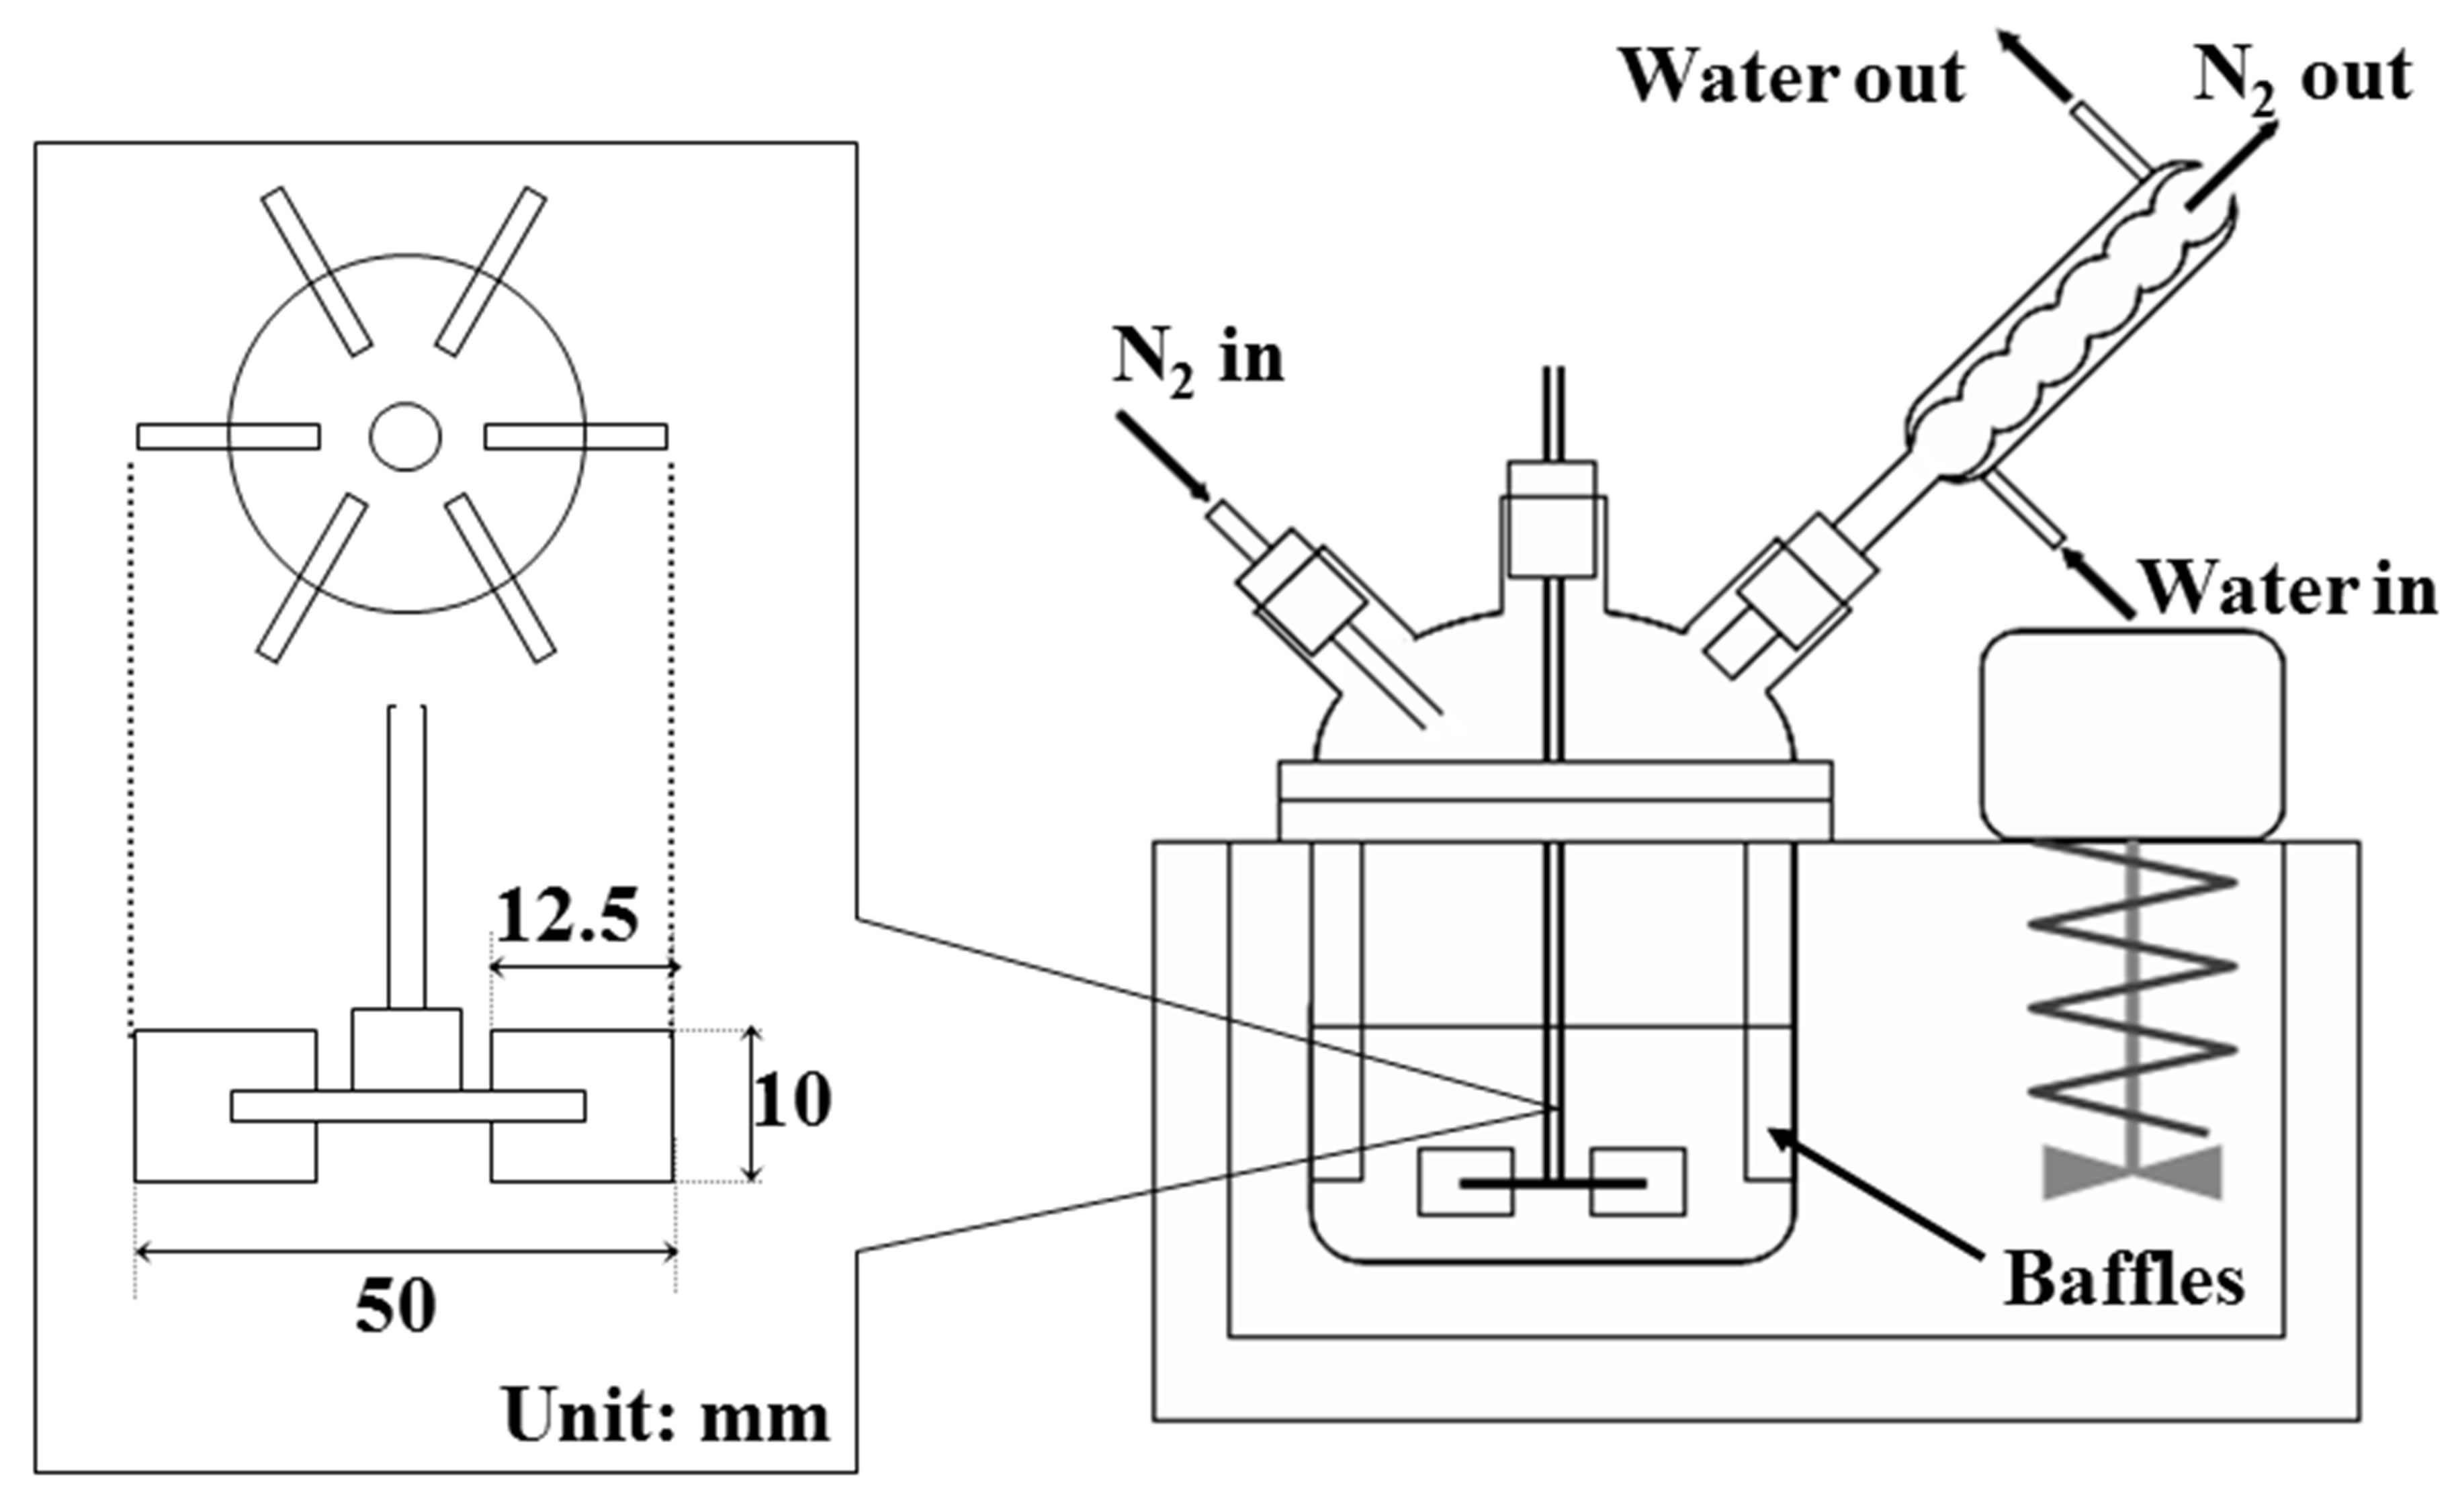 preparation of microcapsules with liquid droplet coalescence method followed by phase separation